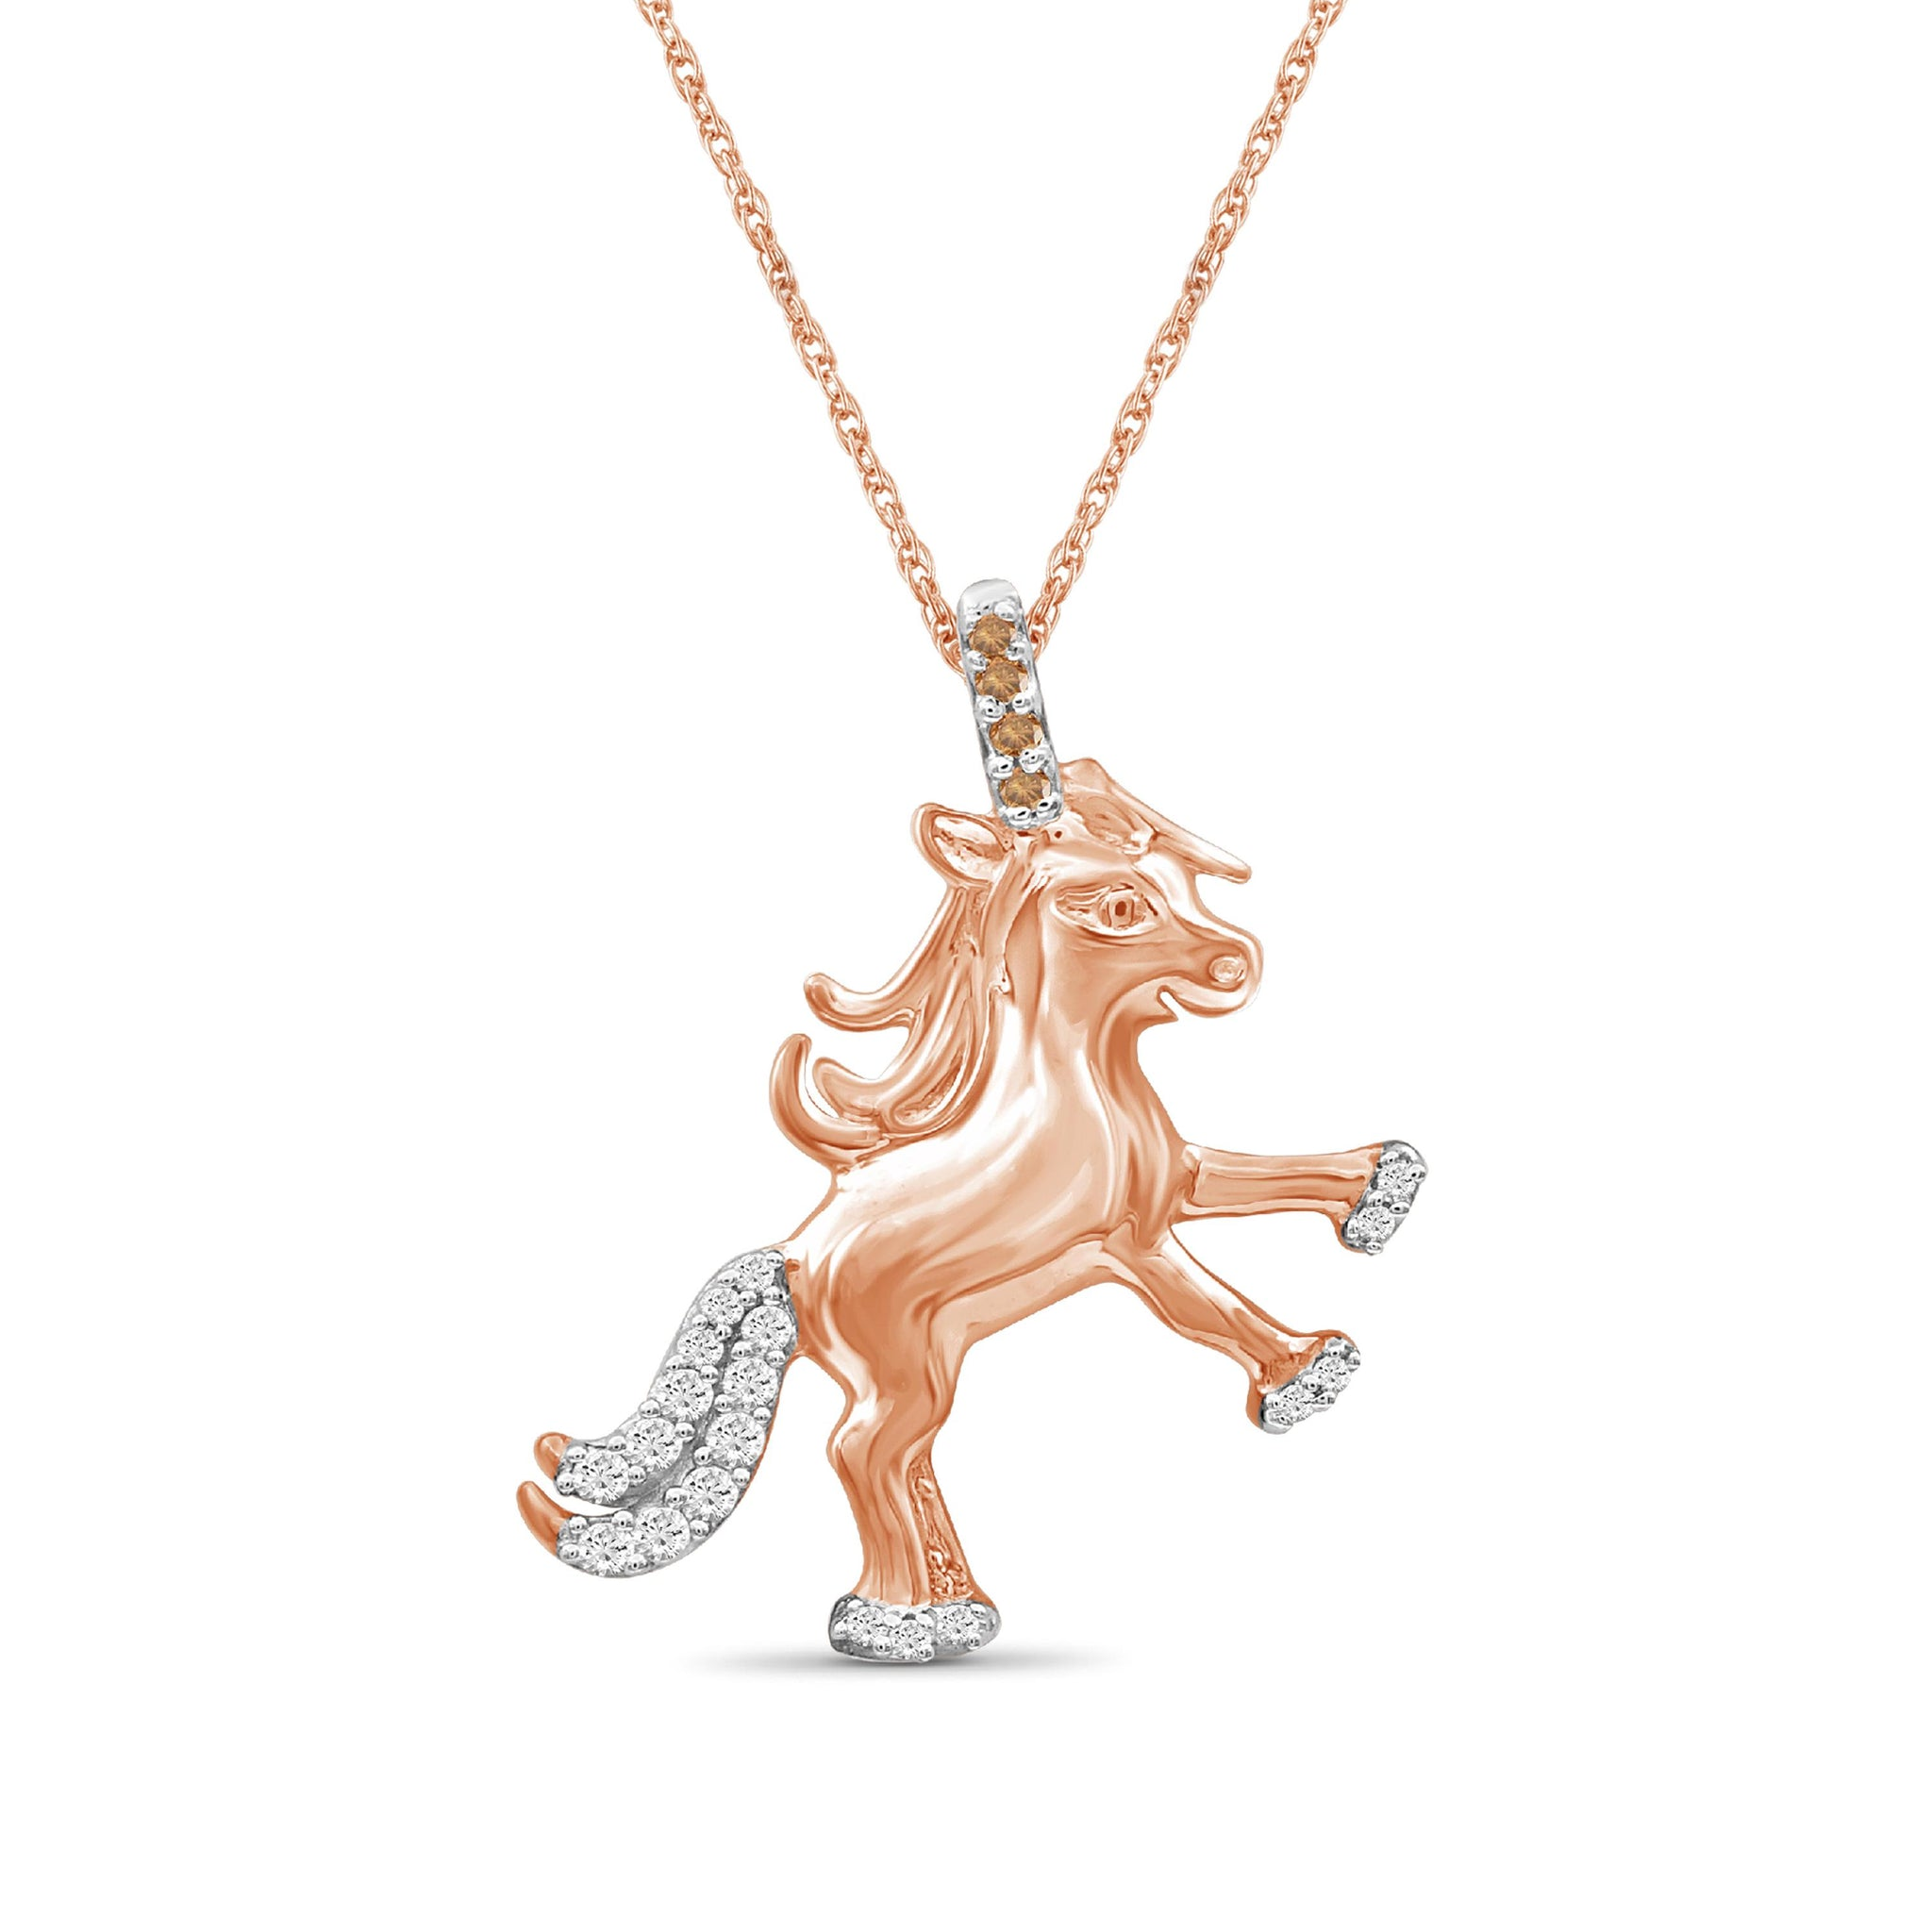 JewelonFire 1/10 Ctw Champagne & White Diamond Rose Gold over Silver Unicorn Pendant